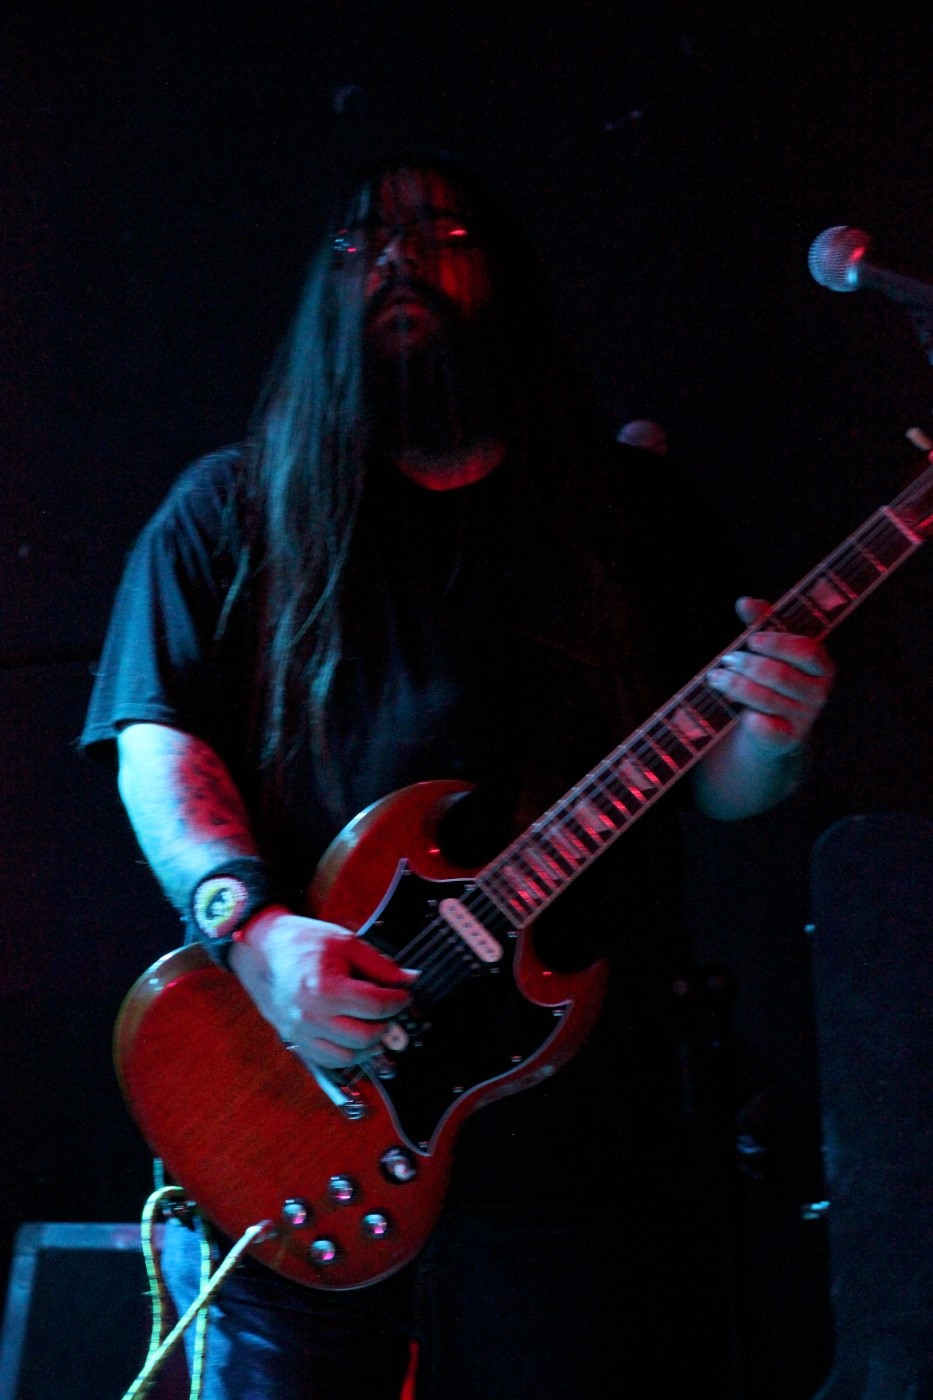 apostle of solitude (Photo by JJ Koczan)